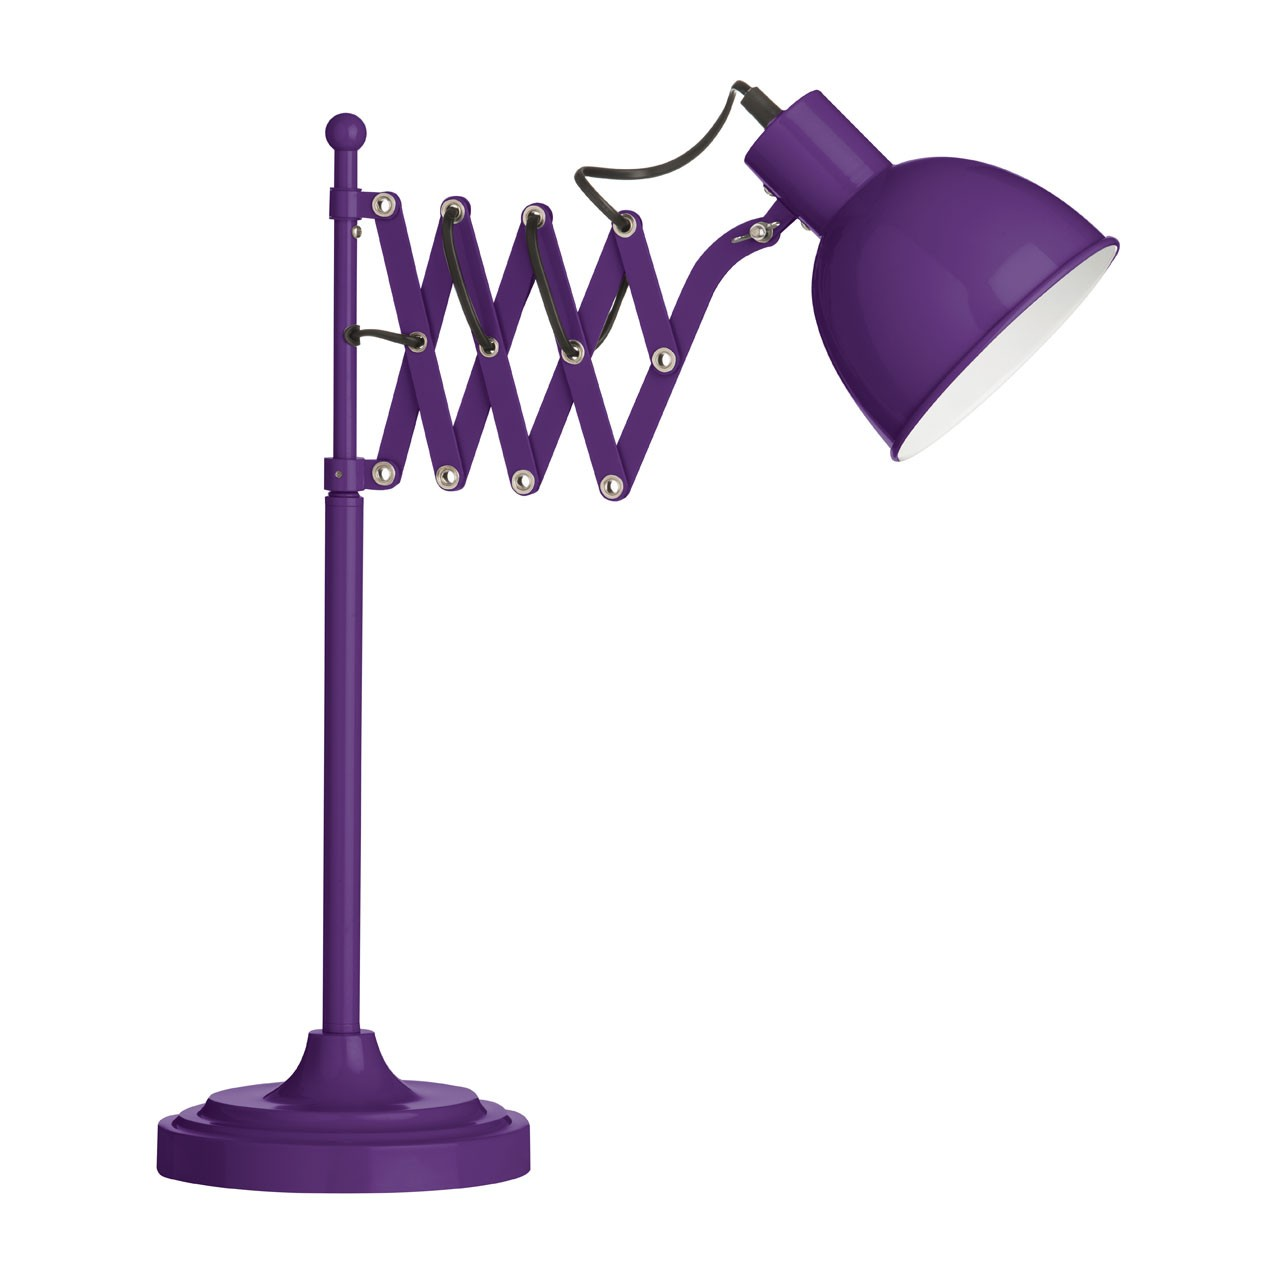 E27 Edison Screw 40 W Extendable Metal Table Lamp - Purple